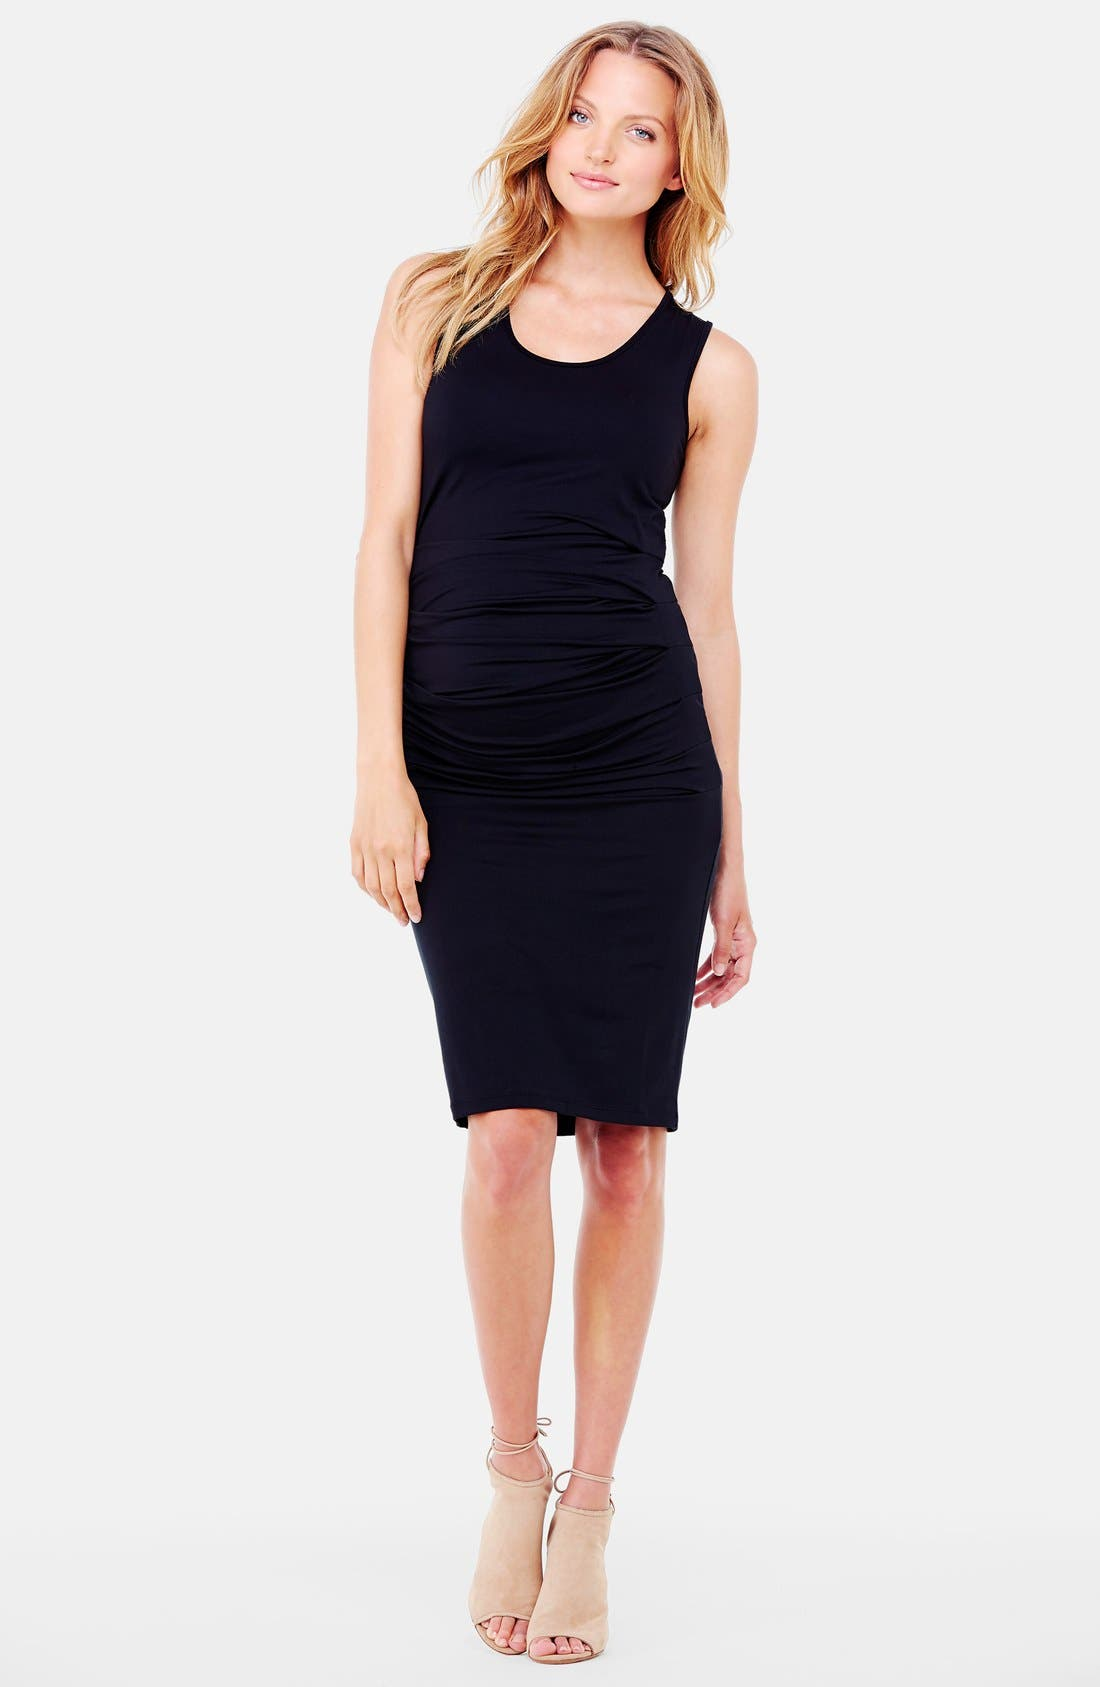 Womens maternity dresses nordstrom ombrellifo Choice Image